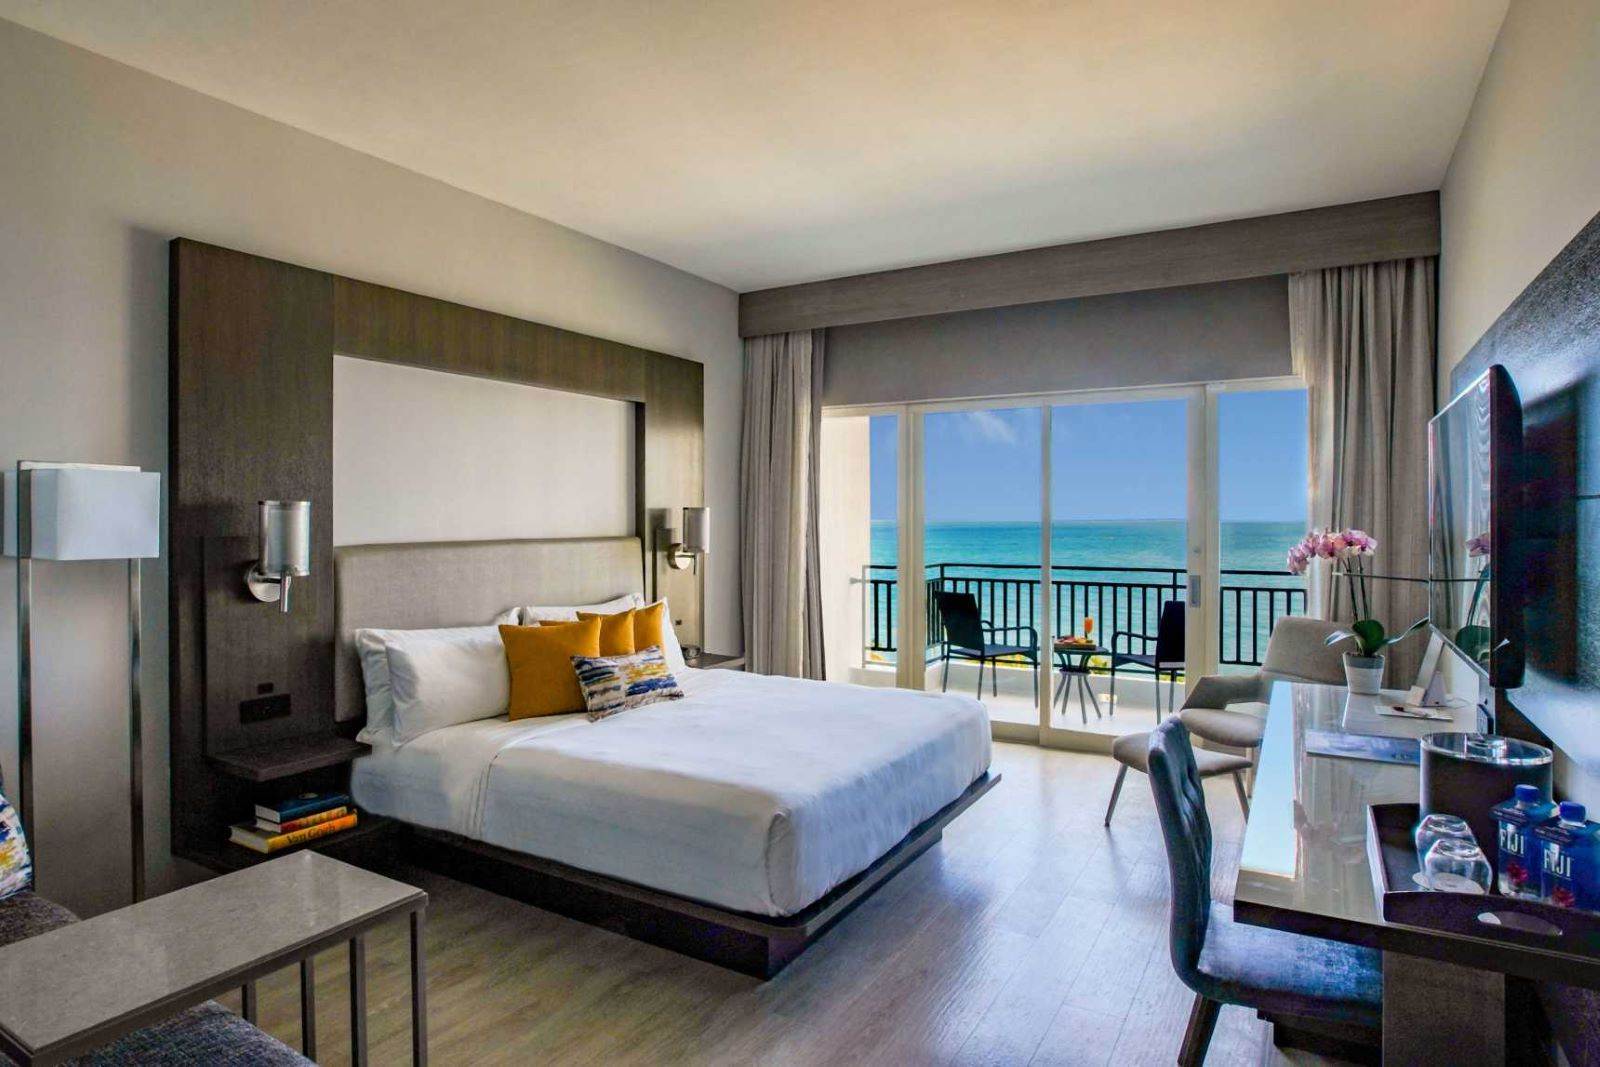 San Juan Marriott resort hotel room with a king size bed and sliding glass door showing the balcony with sitting area overlooking the clear blue water and blue sky